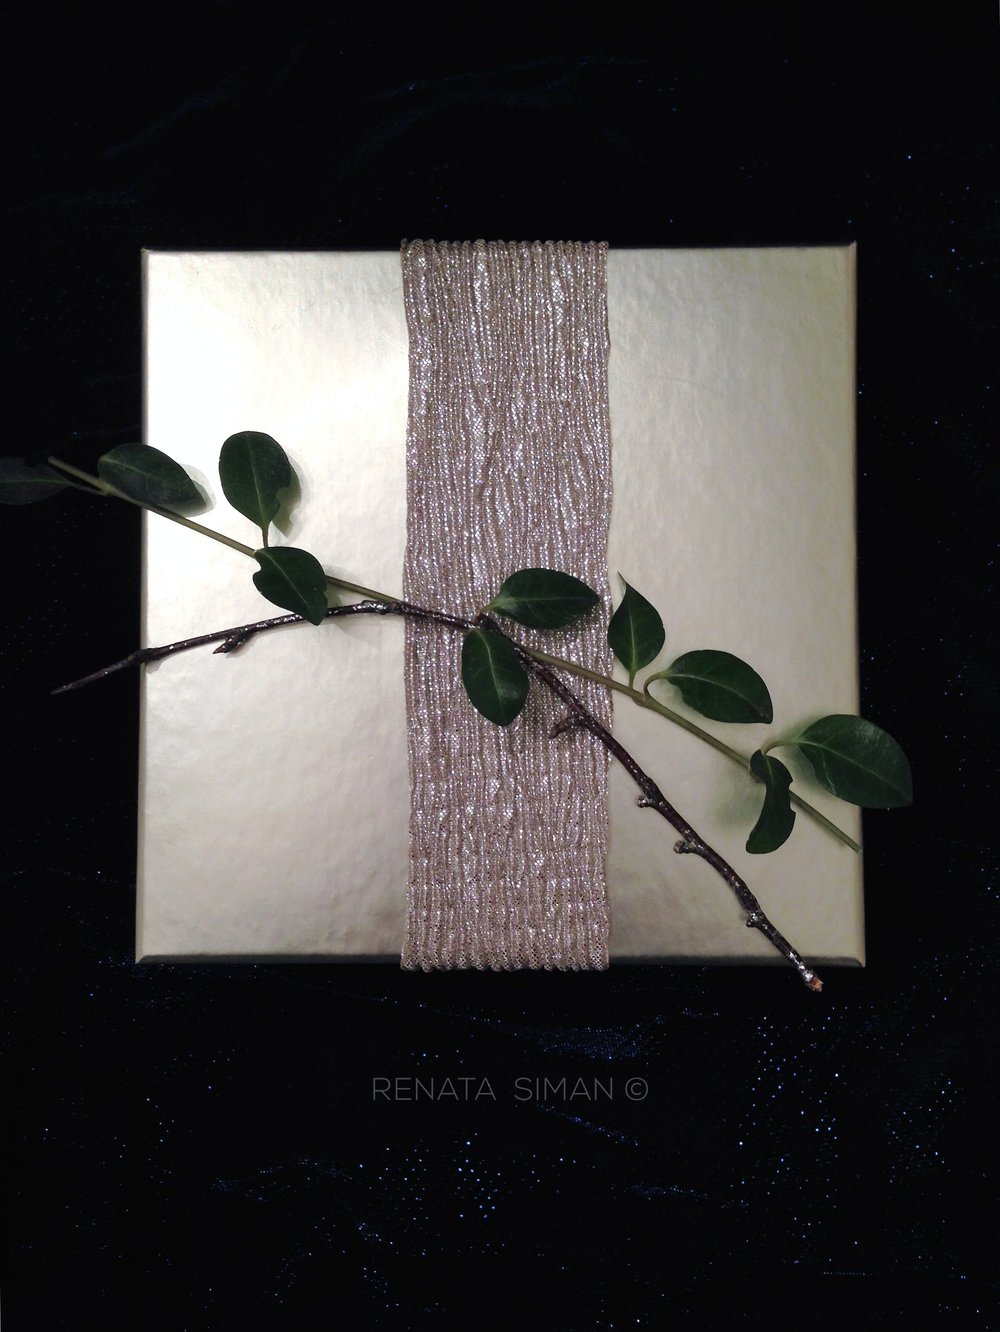 A decorative, brown glittery twig broke off from what I had as a home decor accessory in a vase. So why not add it here.